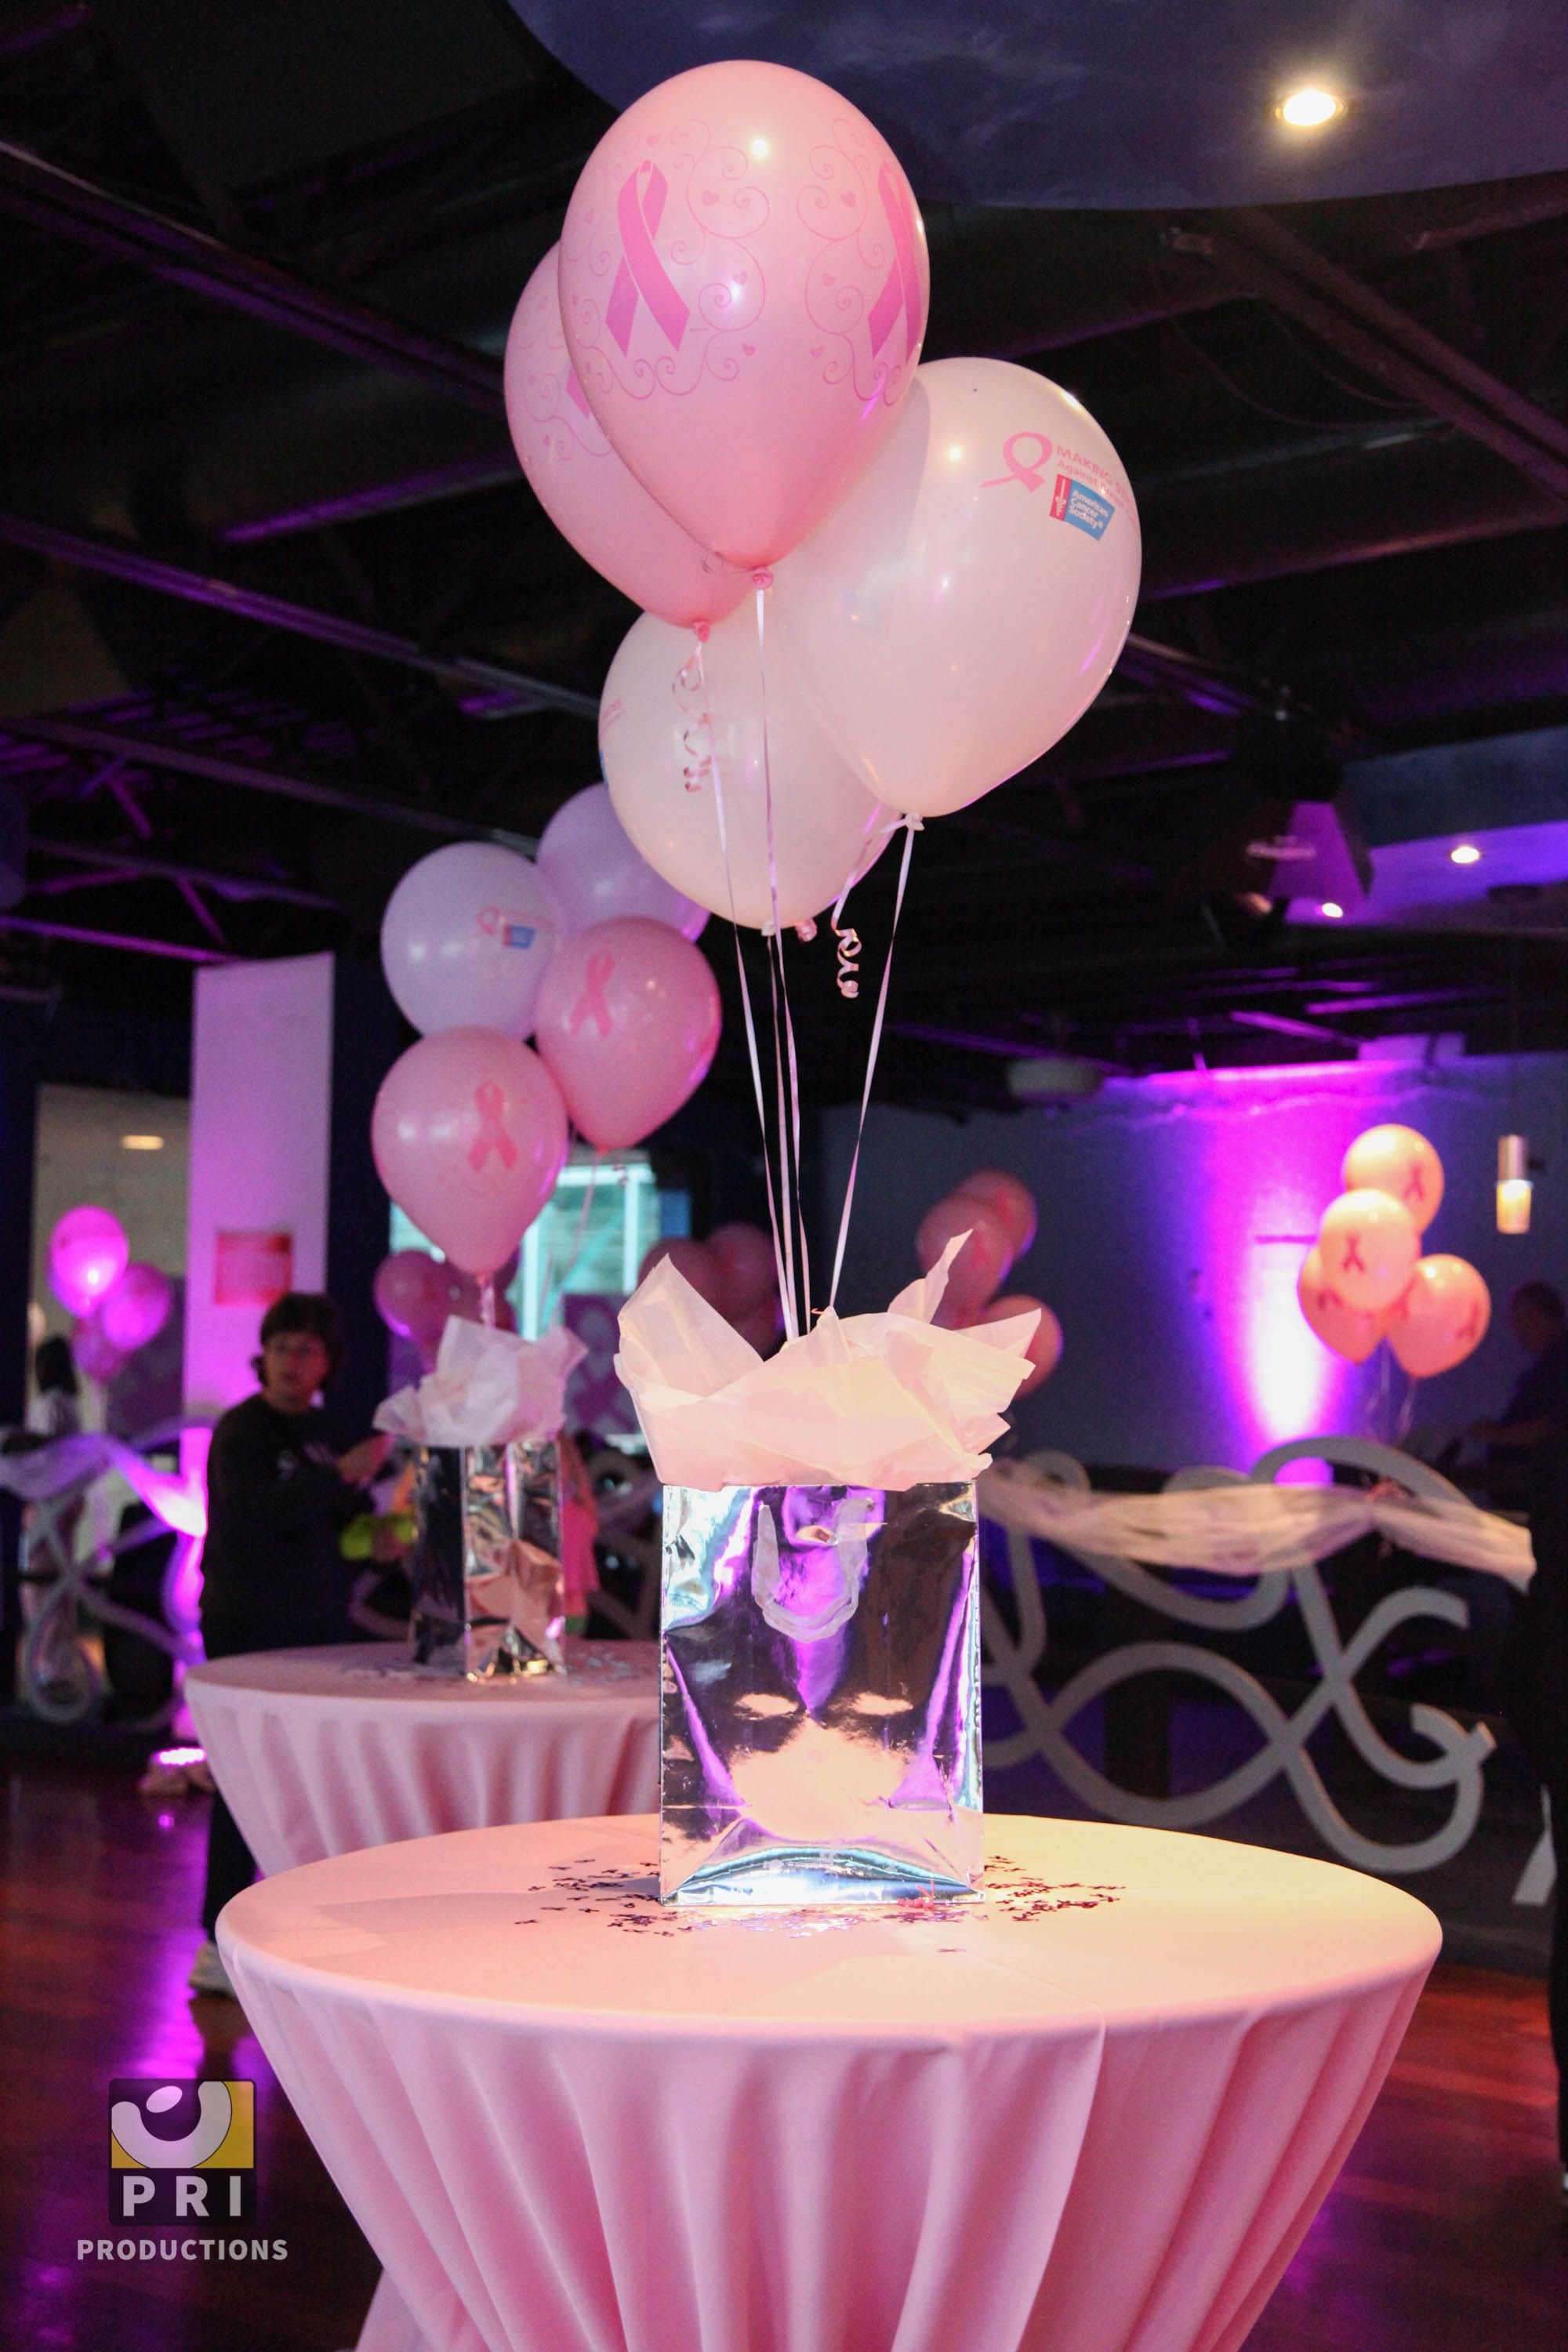 I Chose Gift Bags To Make These Balloon Centerpieces In There Are So Many Diffe Ways Them Event Decorating Planning Pinterest